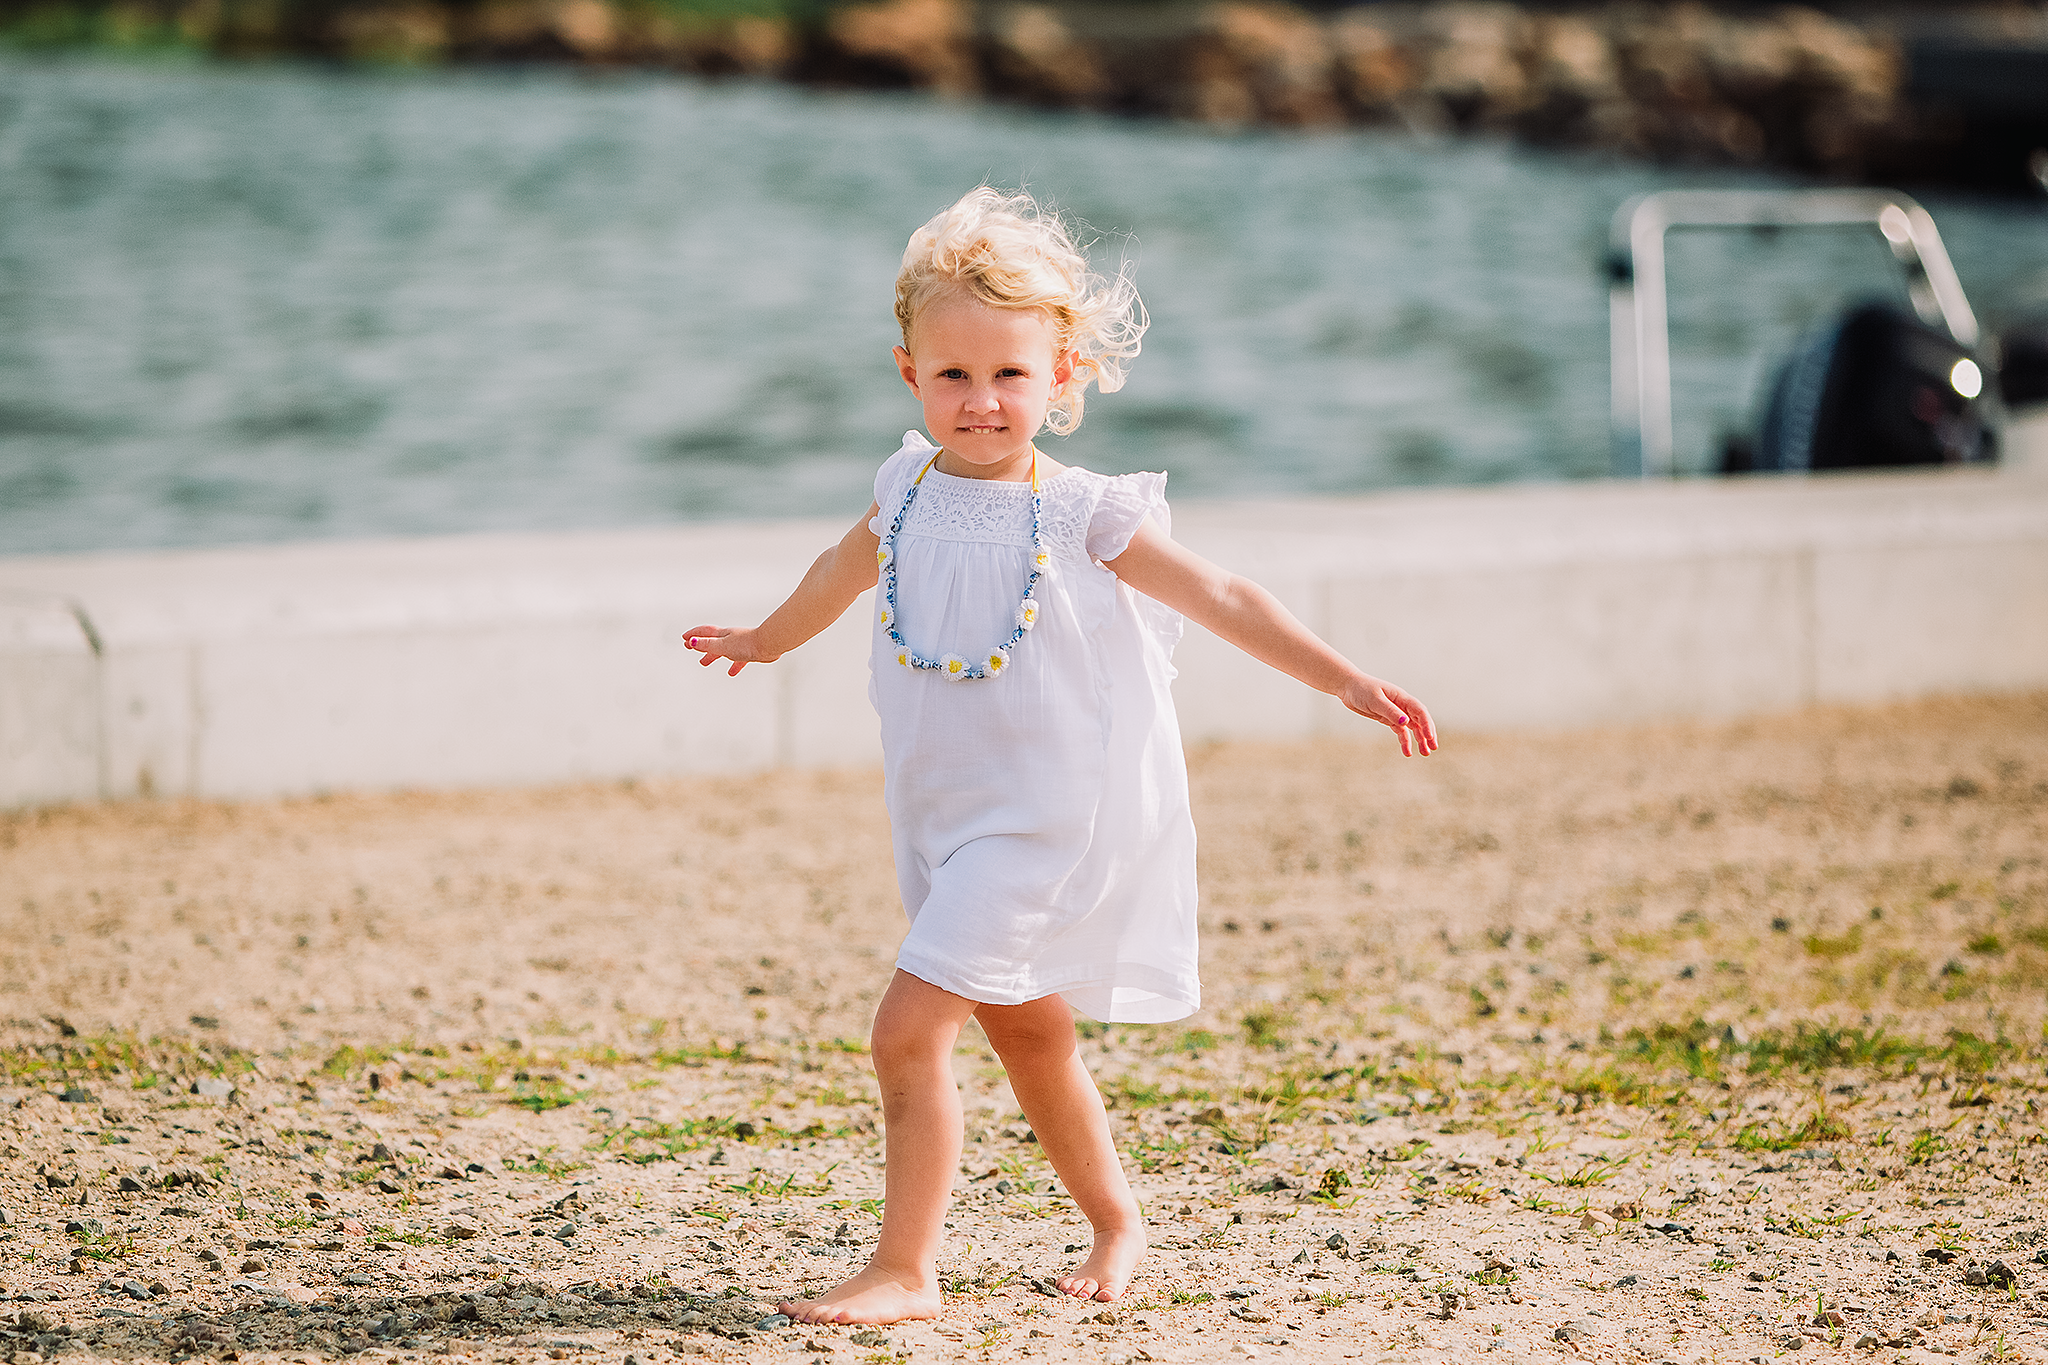 little girl in white dress walking barefoot with arms outstretched